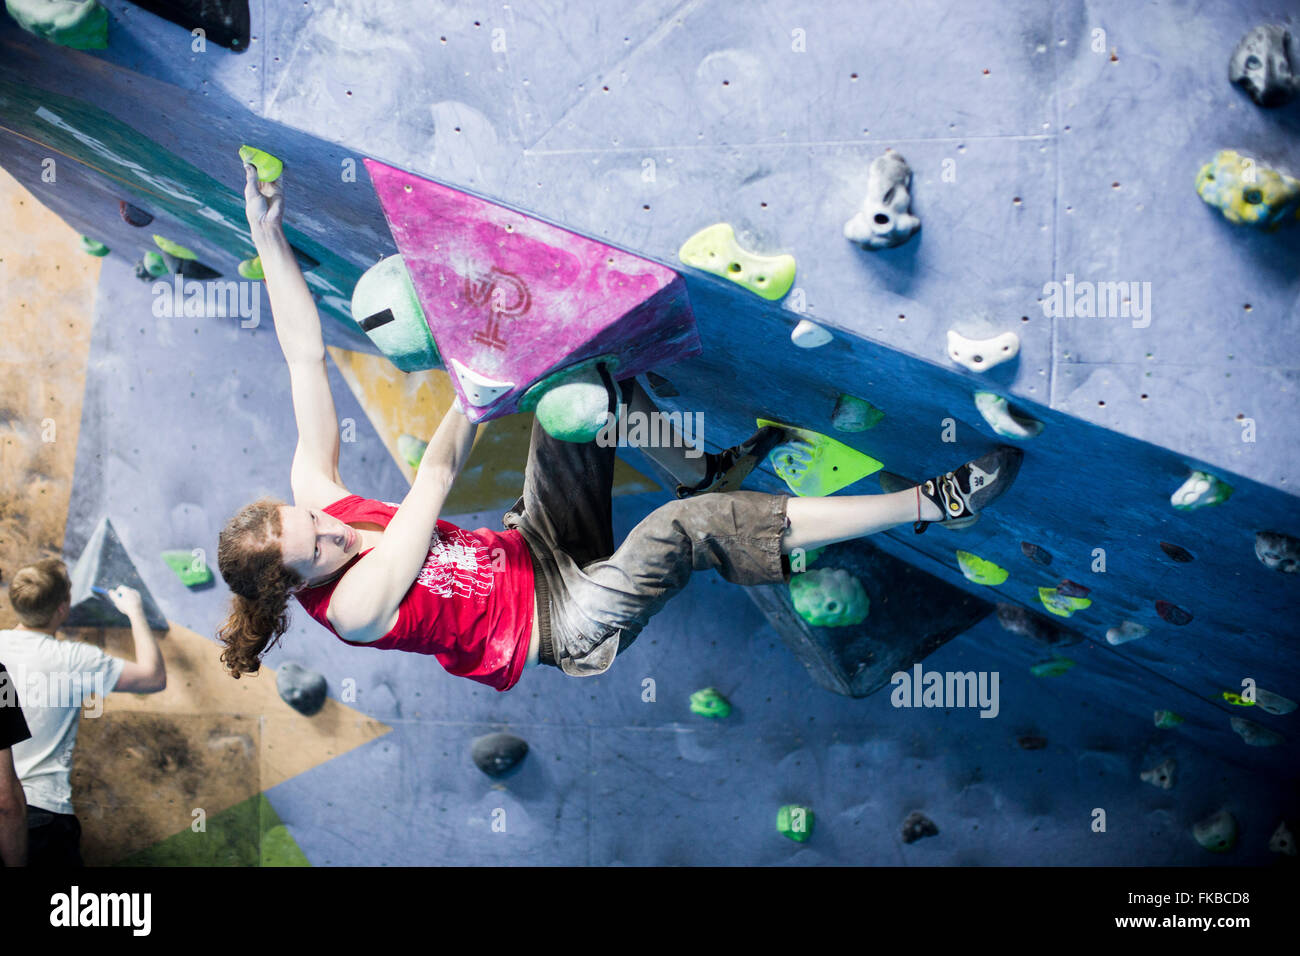 Climbers take part in a bouldering competition at The Climbing Academy, Bristol. - Stock Image